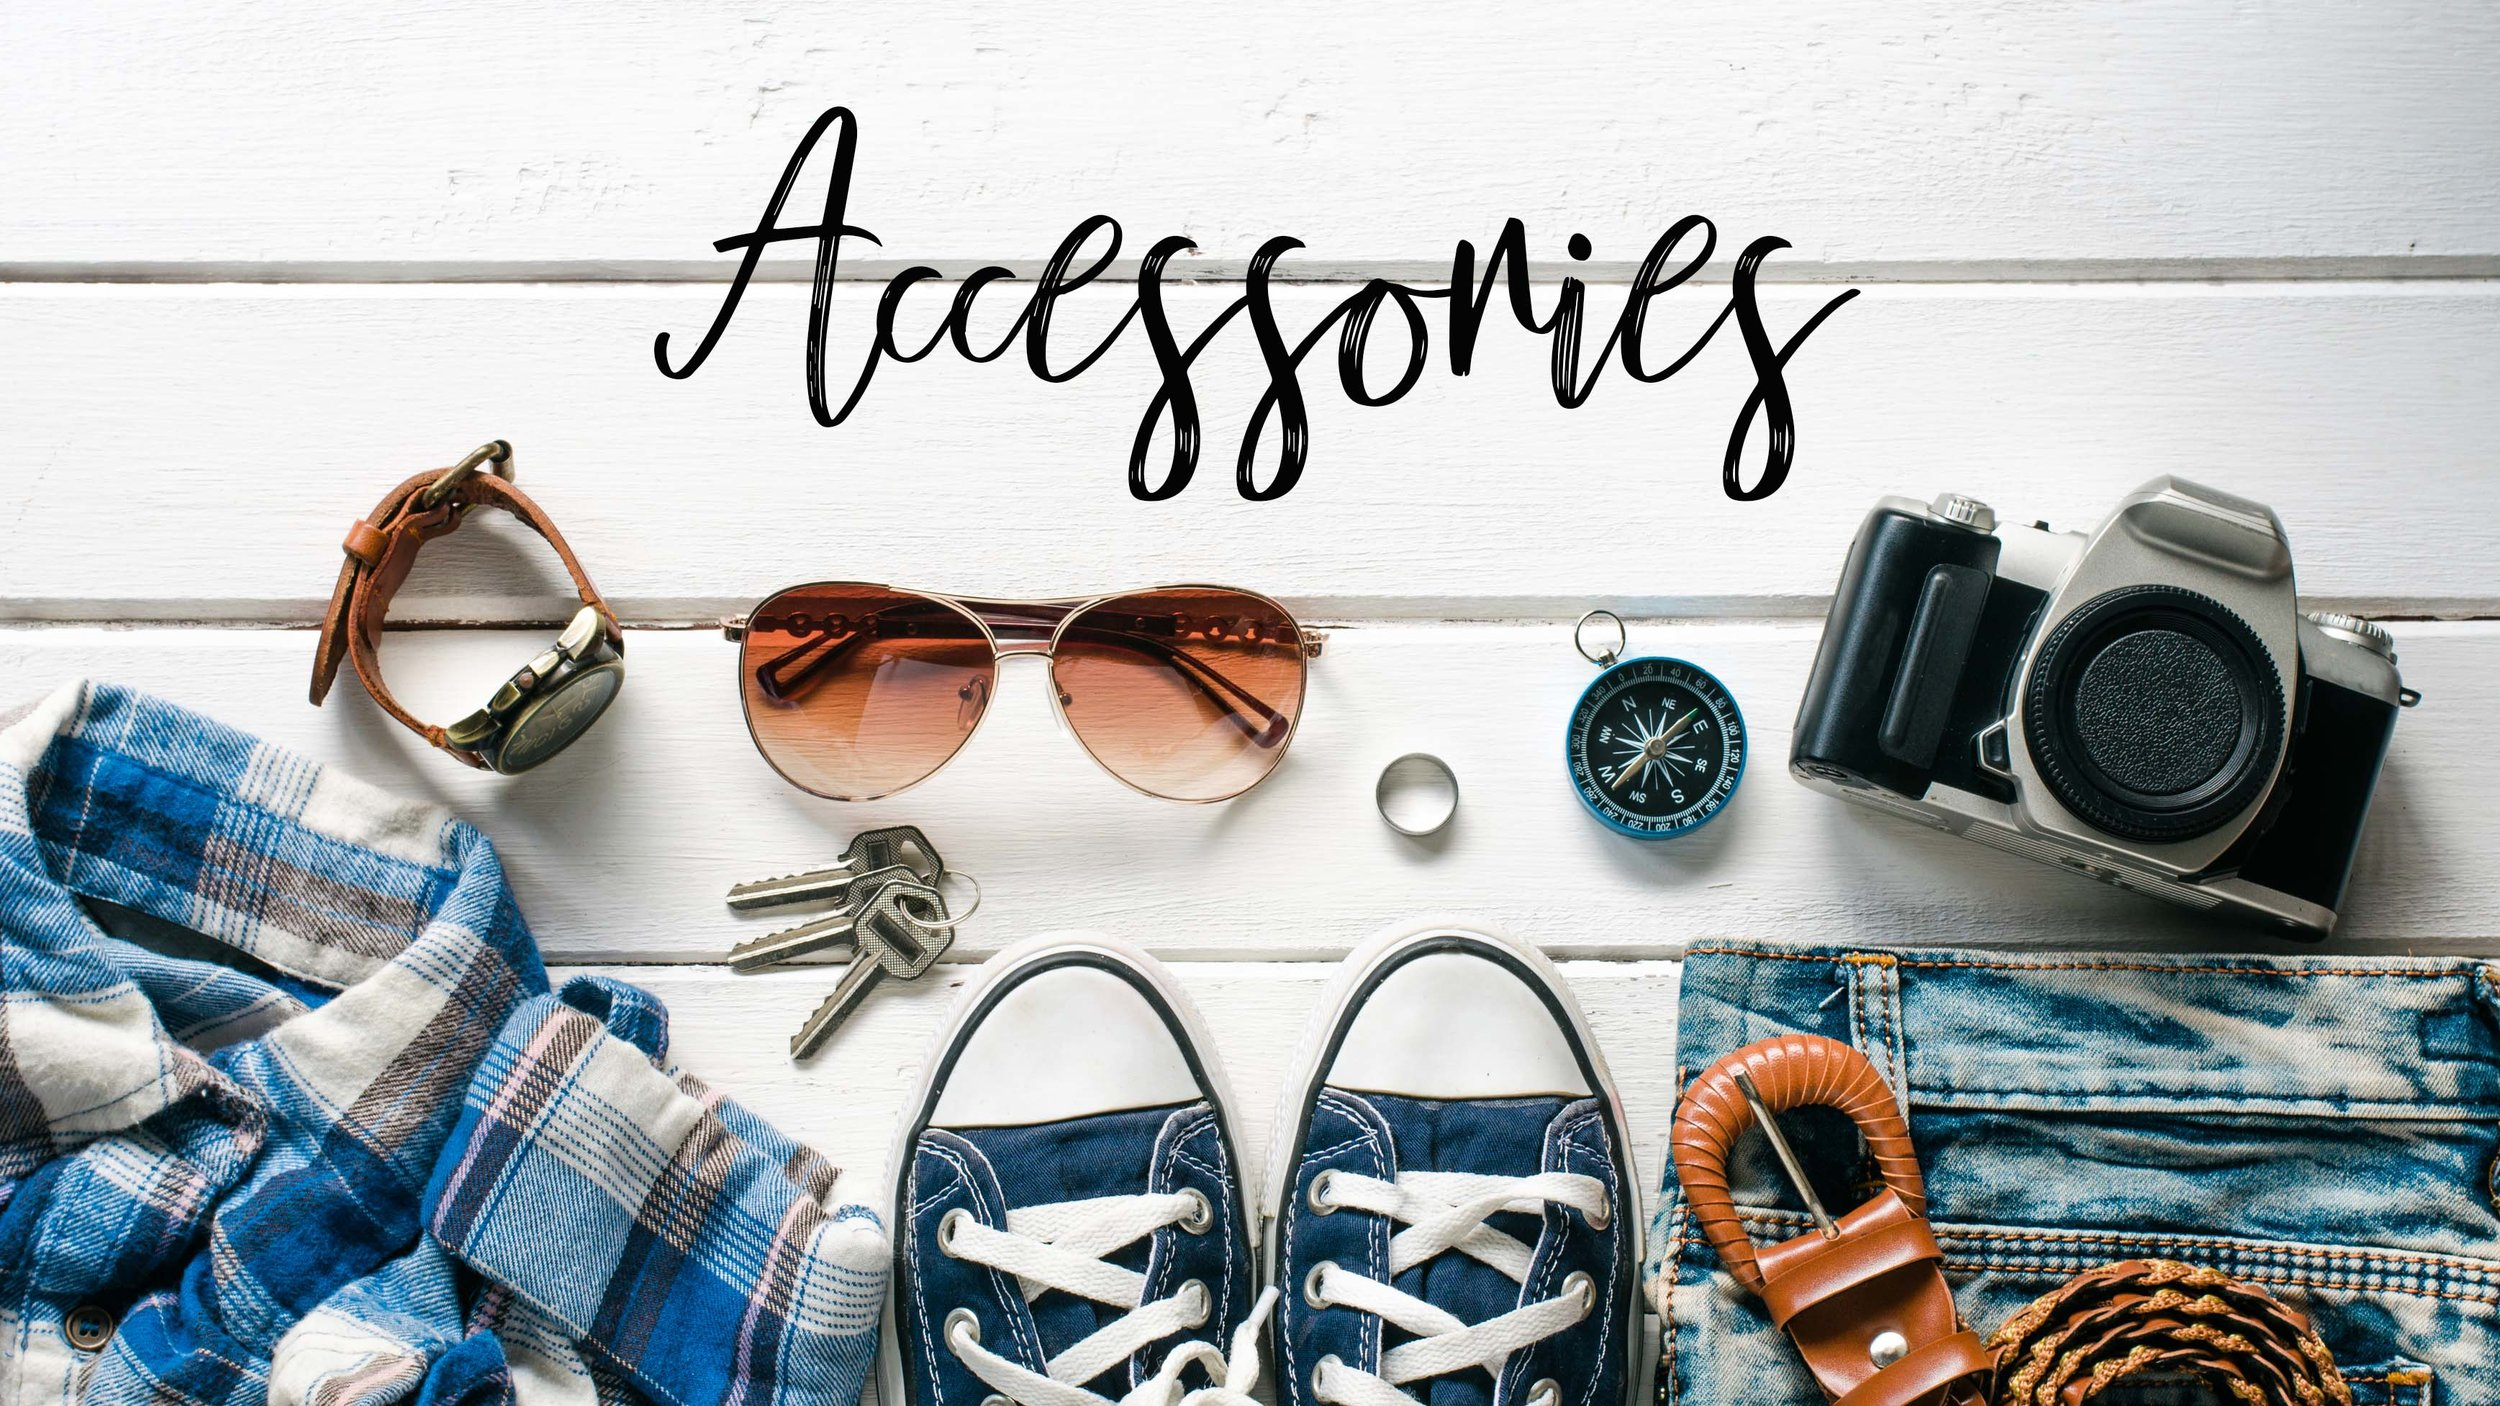 Family travel accessories